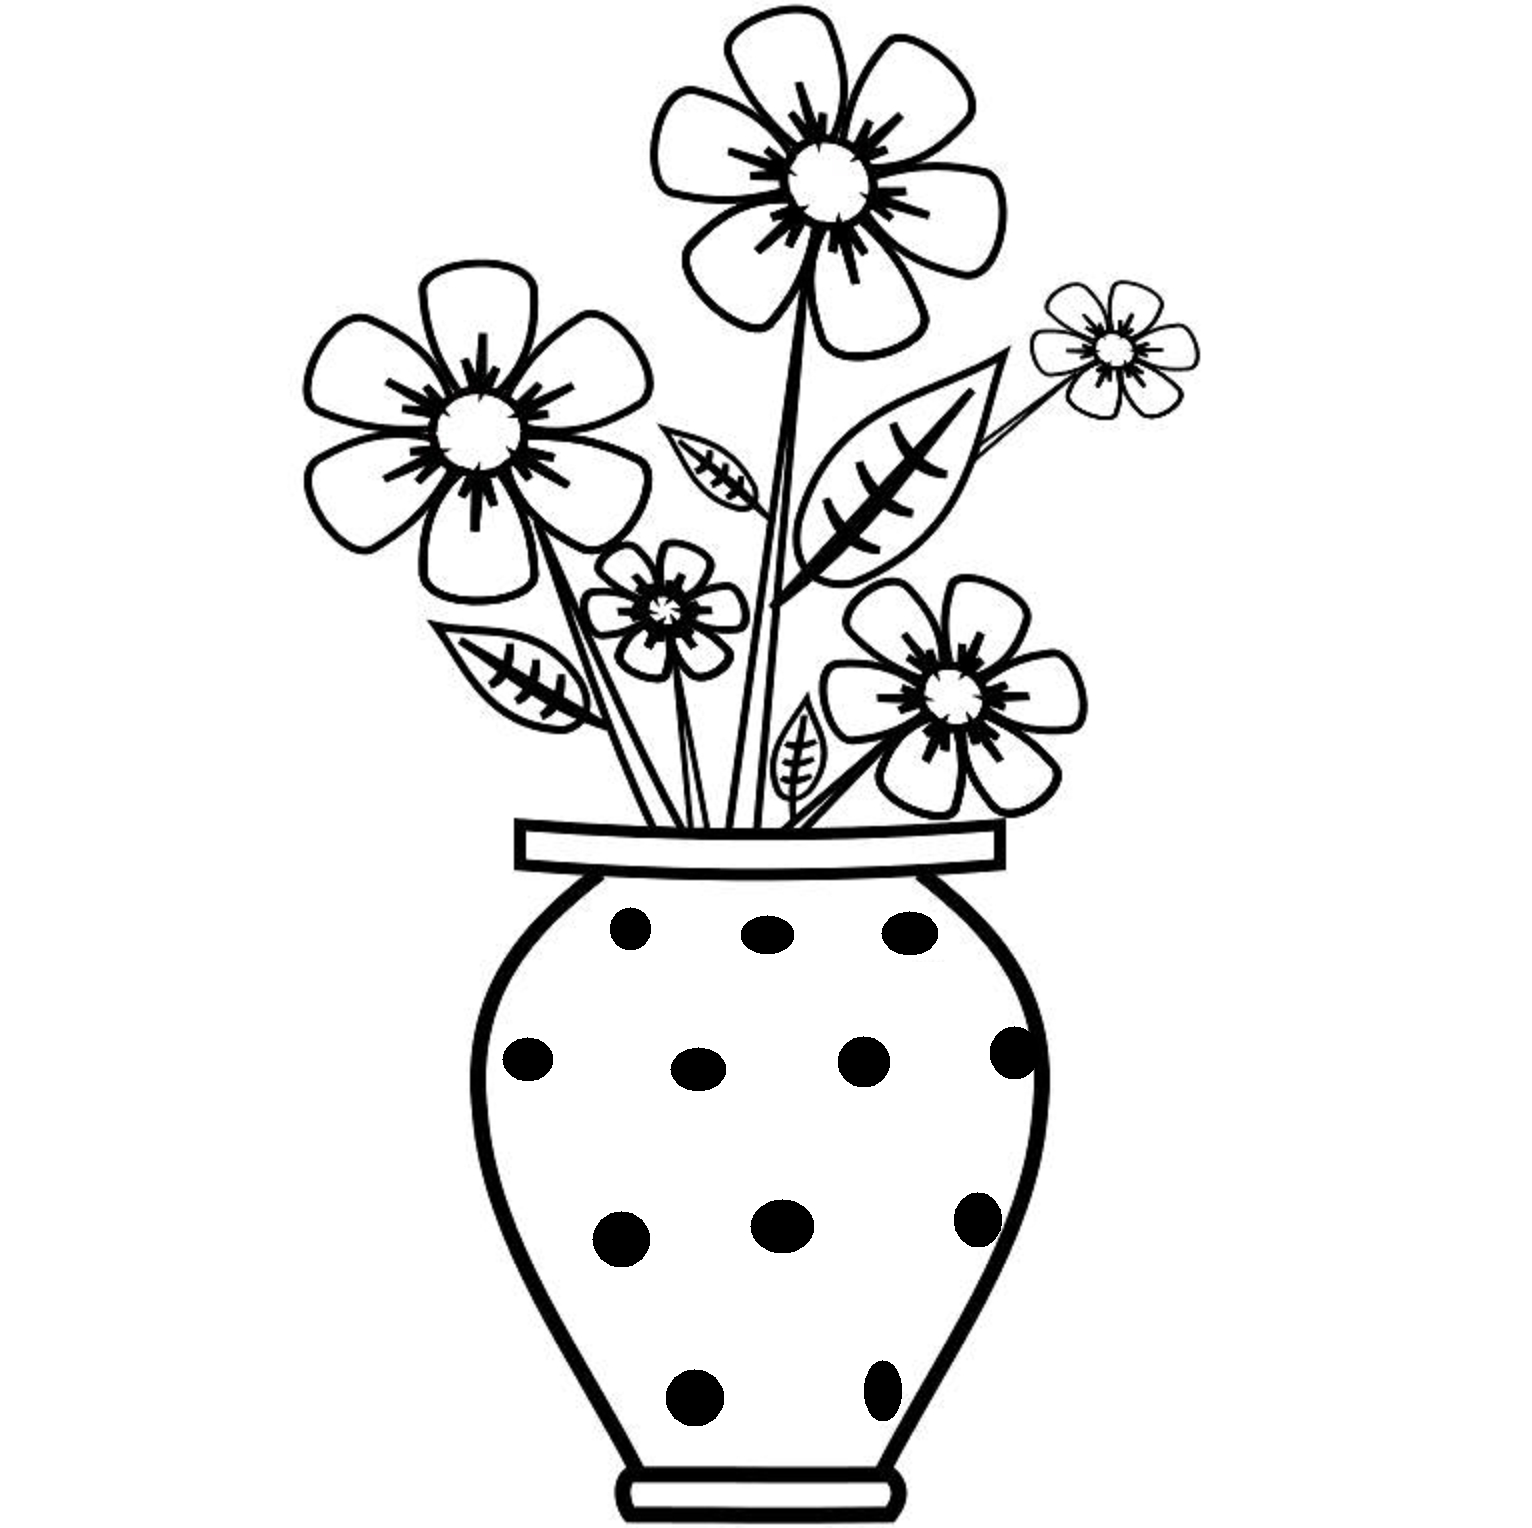 1532x1528 Sketch Of Flower Vase Free Drawing Of Flowers In A Vase Clipart